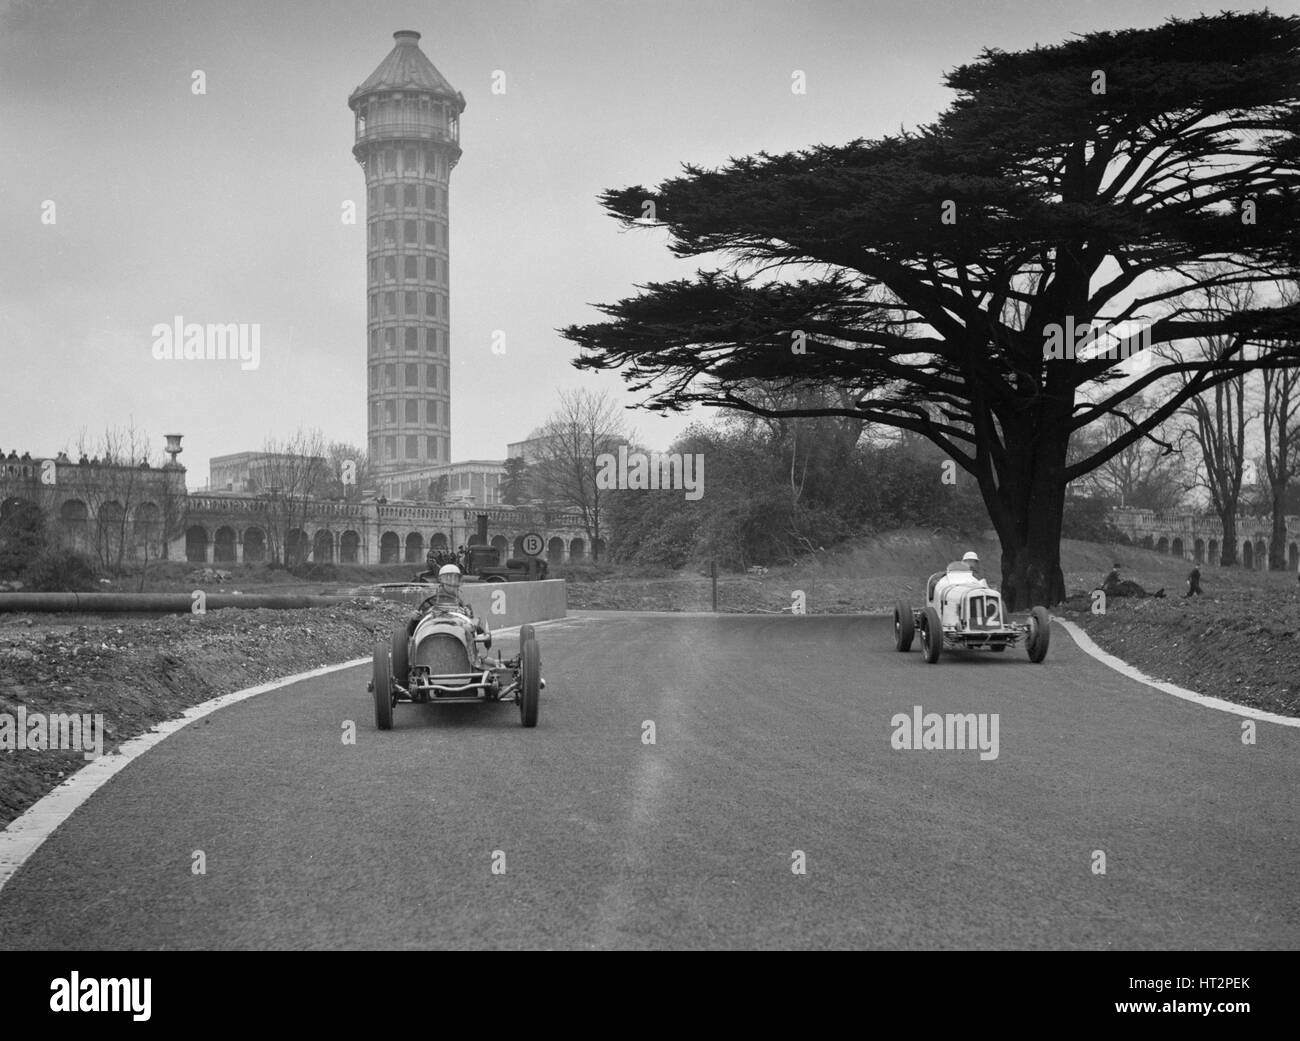 Riley of AD Whitworth and ERA of Arthur Dobson racing at Crystal Palace, London, 1939. Artist: Bill Brunell. - Stock Image